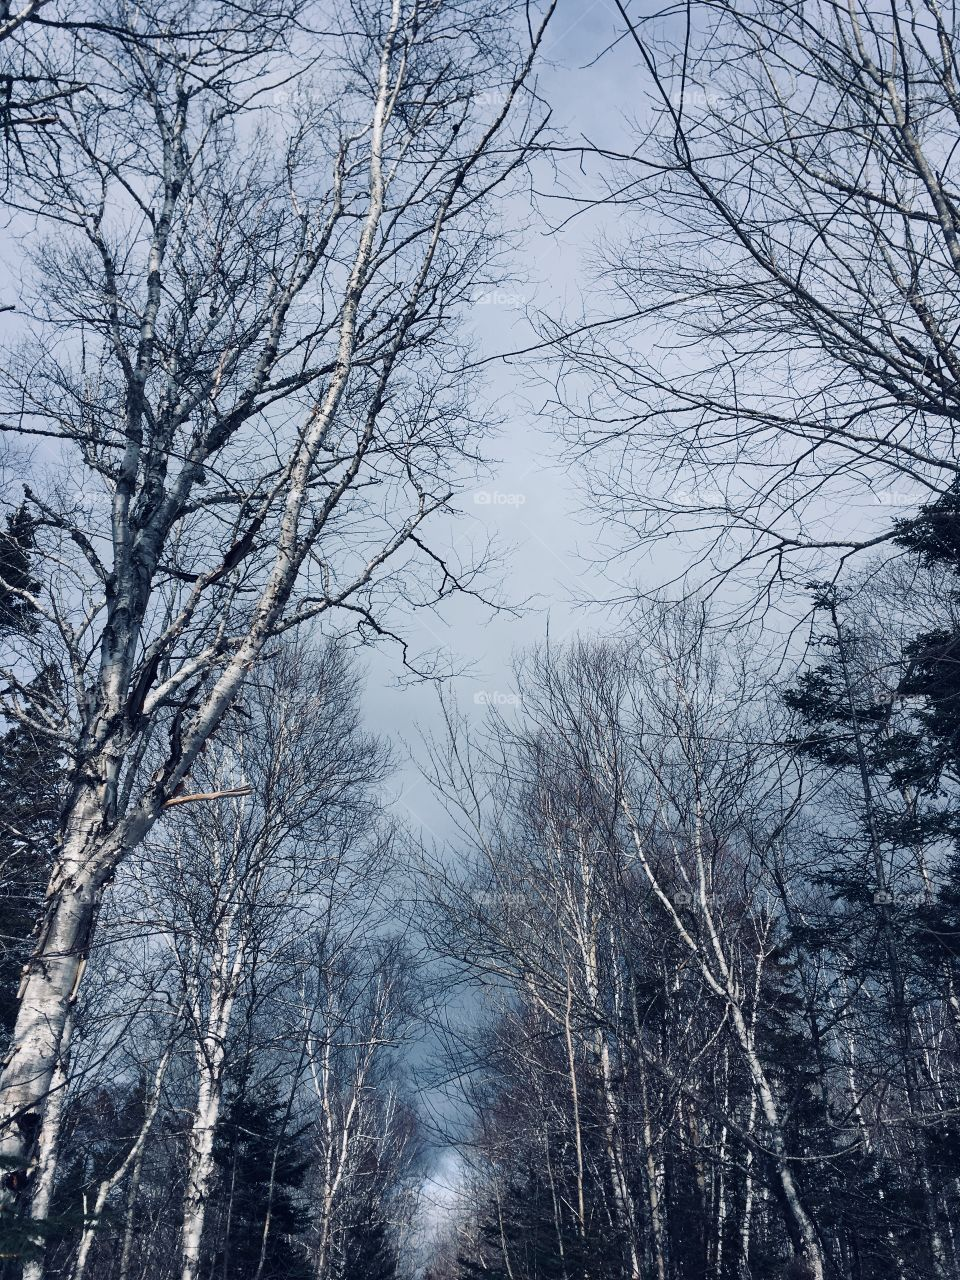 Tall white birch trees without leaves in the forest and sky in winter.